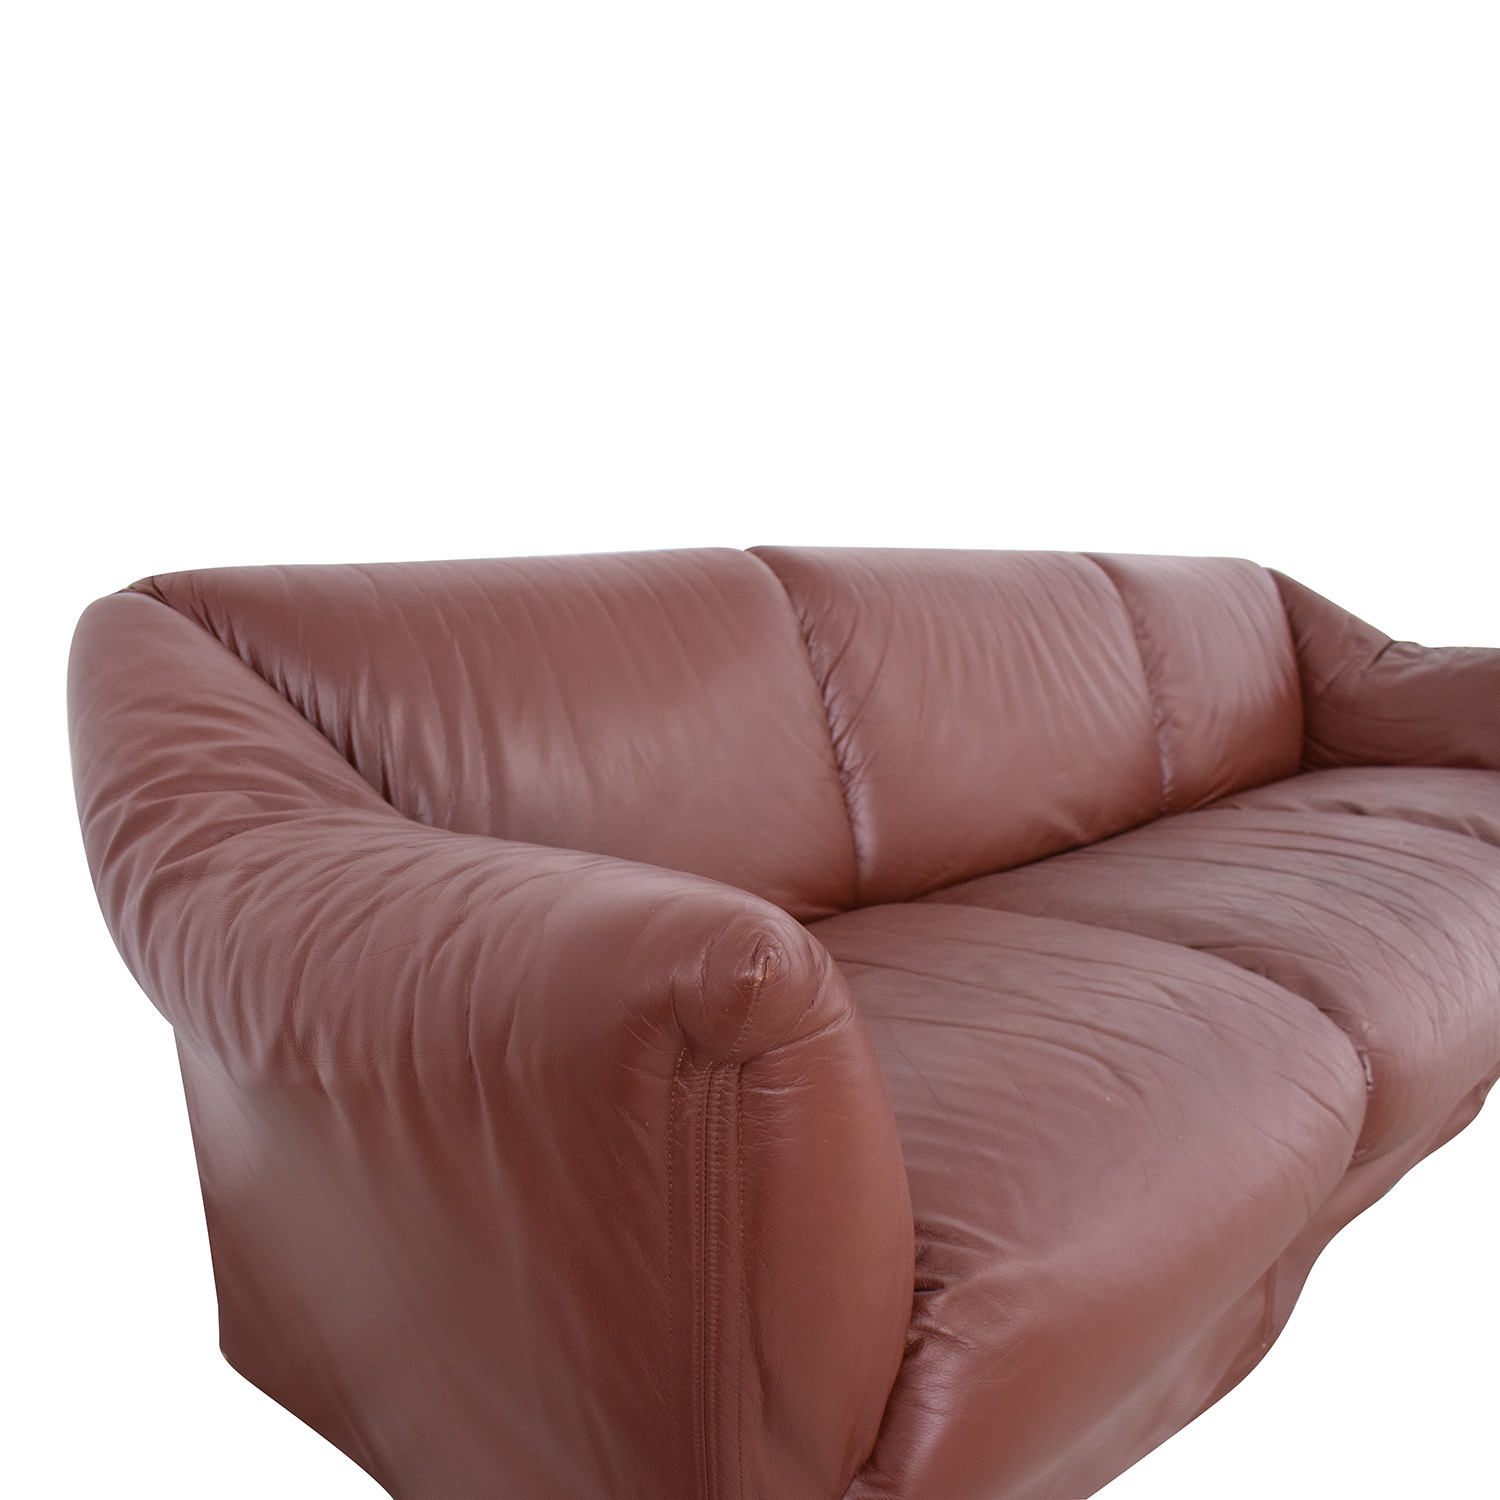 buy Mario Bellini for Cassina Tentazione Sofa Cassina Classic Sofas